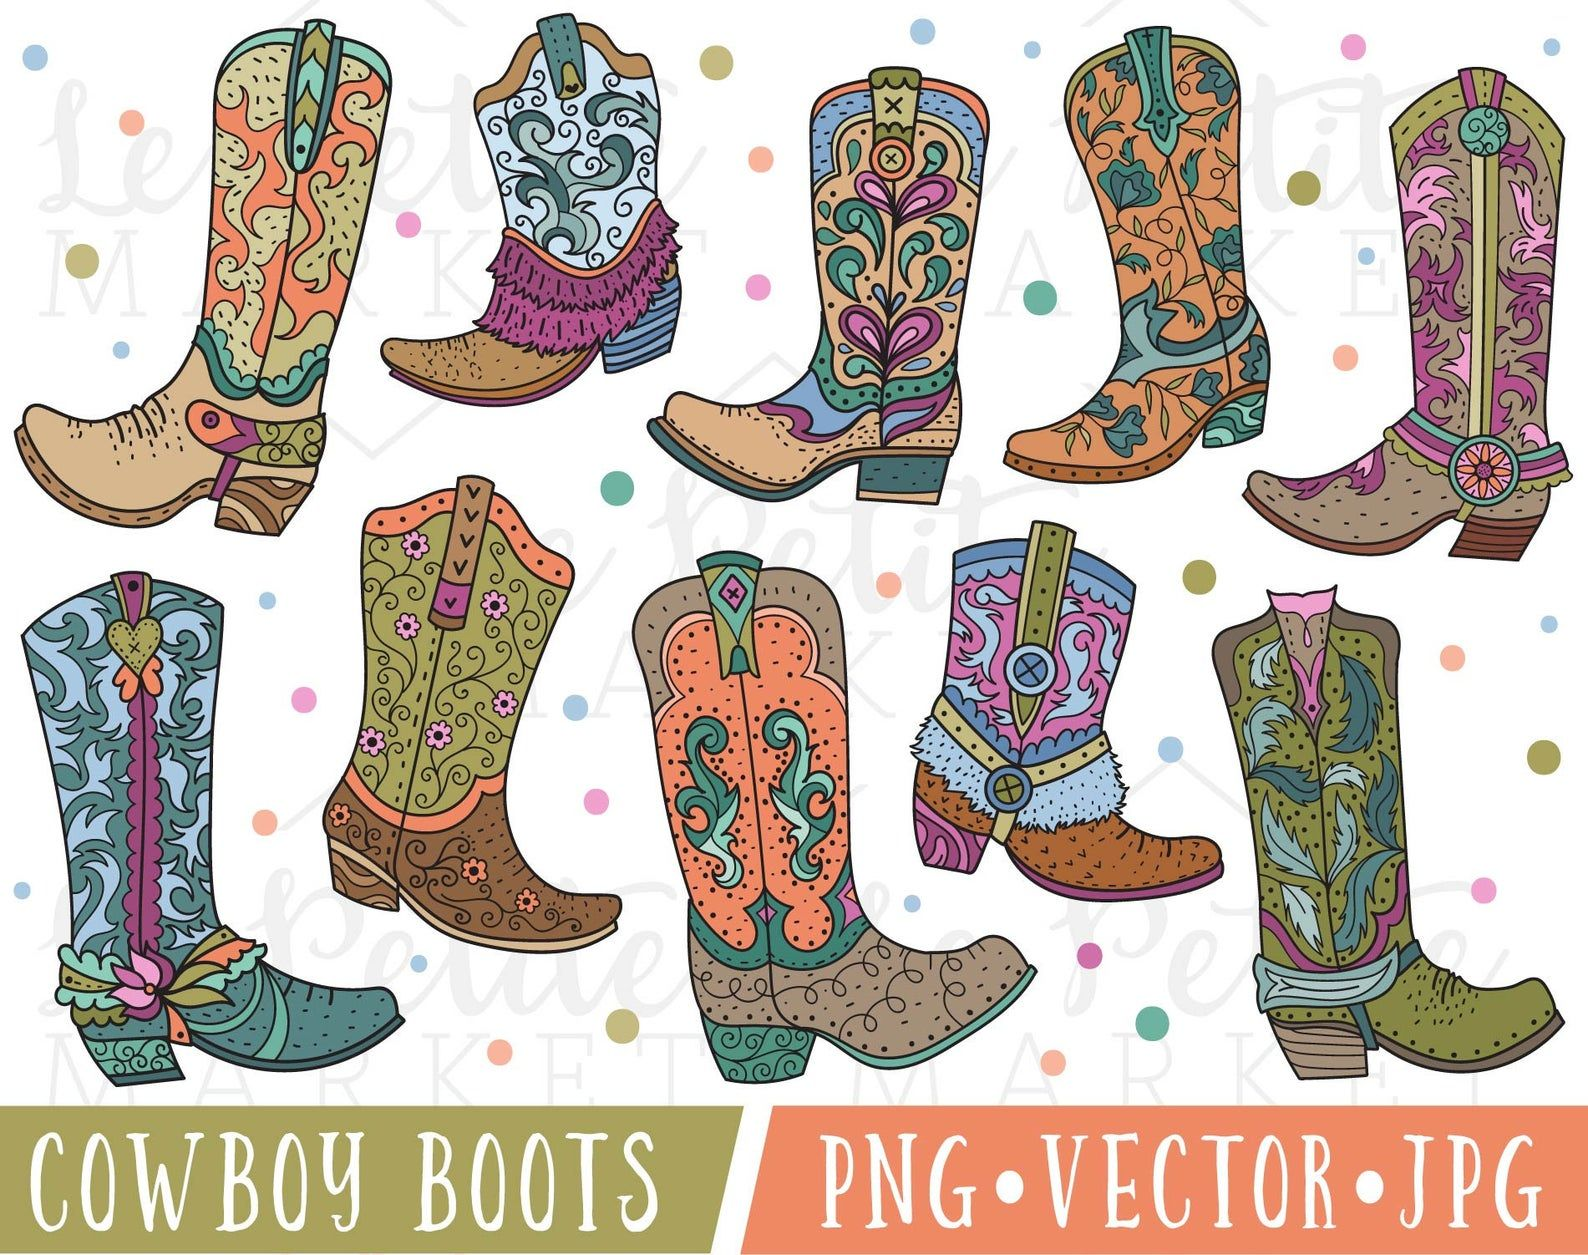 Cowboy Boot Clipart Cute Cowgirl Boot Clipart Cowboy Boot Etsy In 2021 How To Draw Hands Cowboy Boots Boot Clips